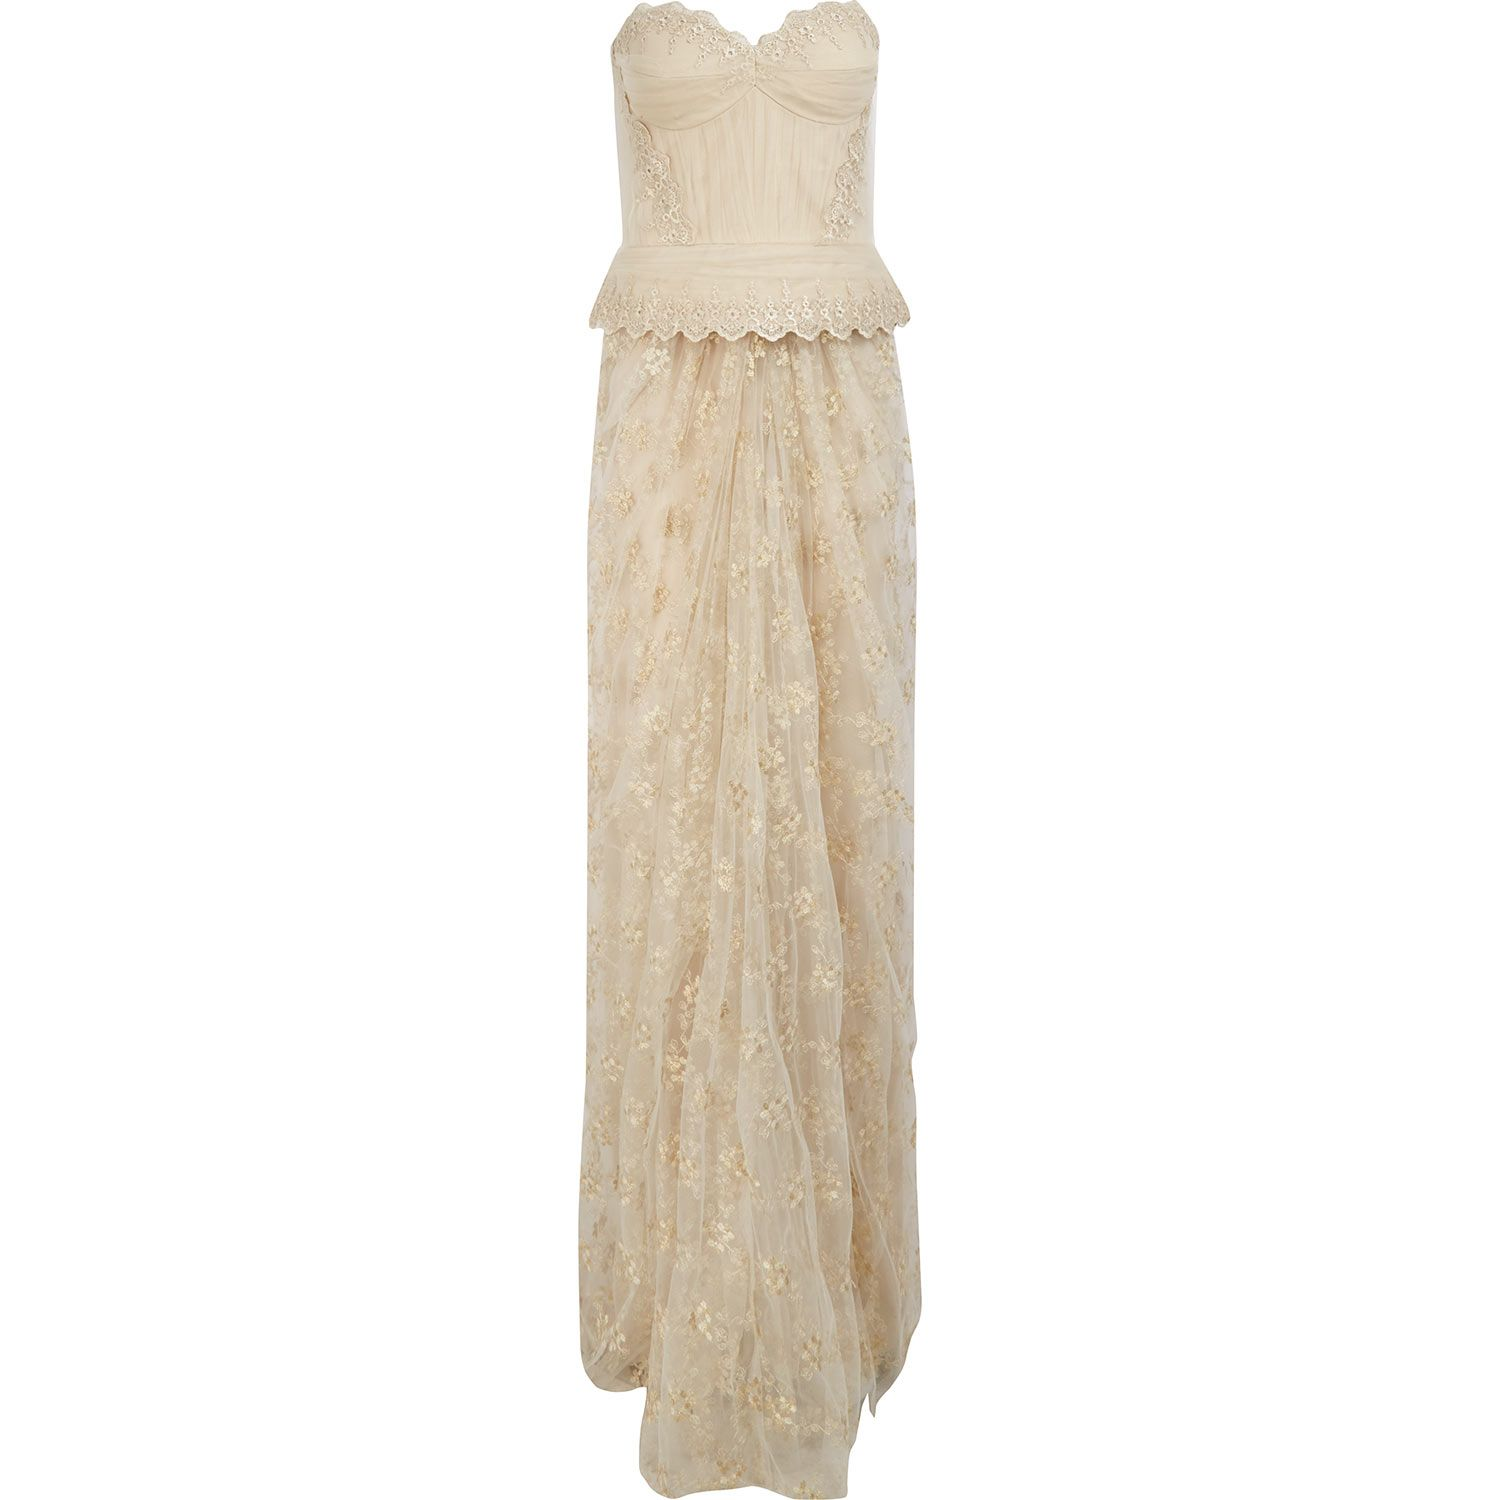 Vincent Mignon Cream Emroidered Evening Gown